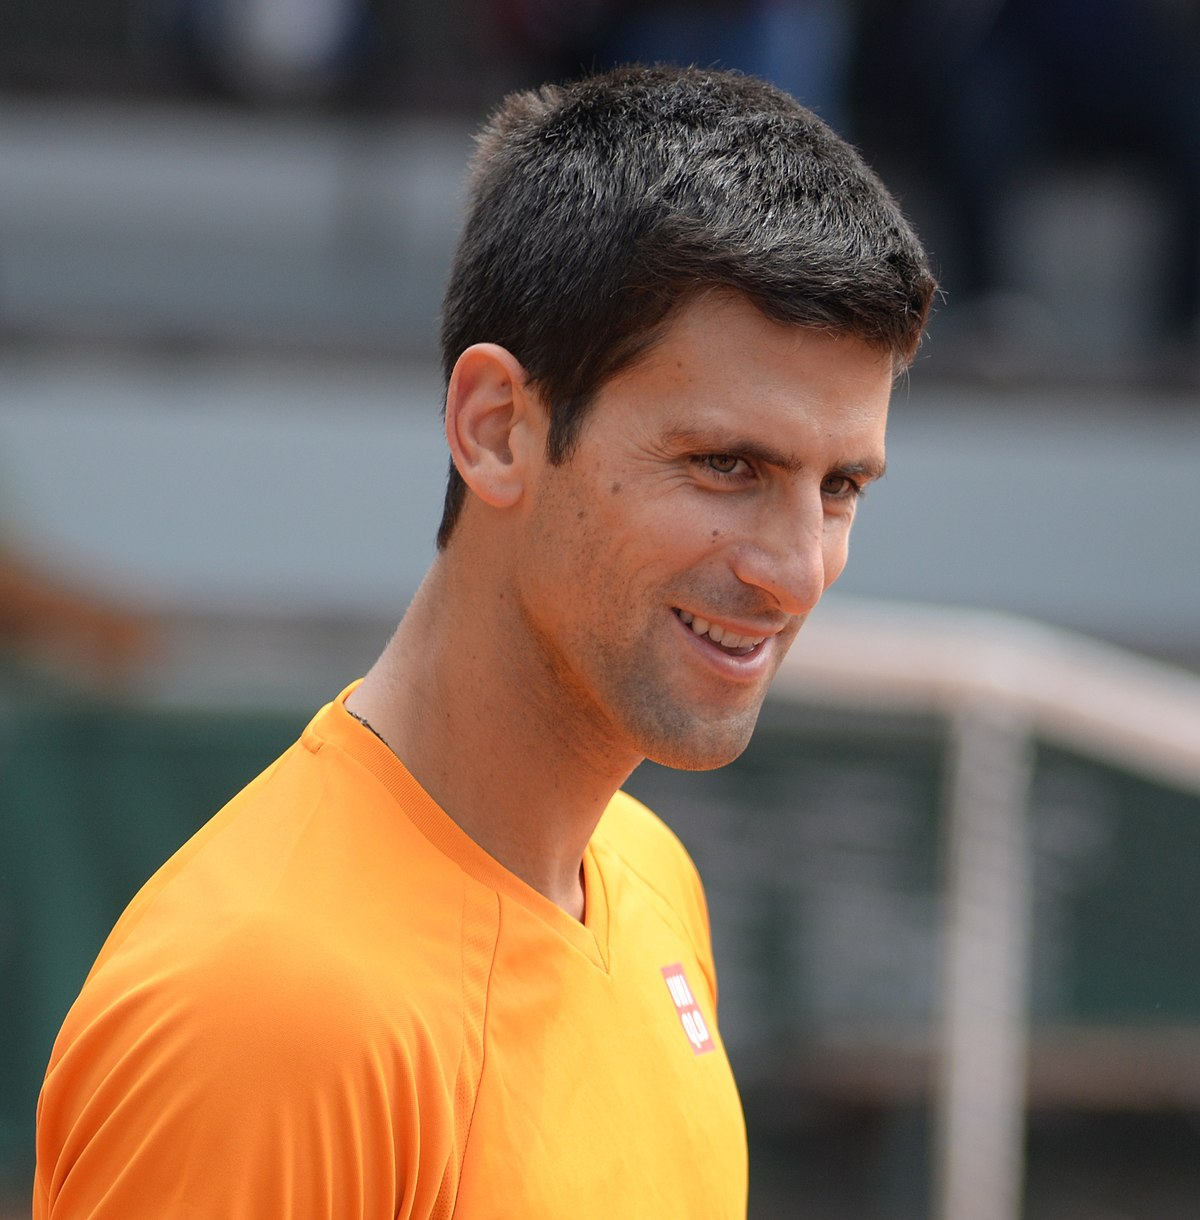 novak djokovic - photo #18